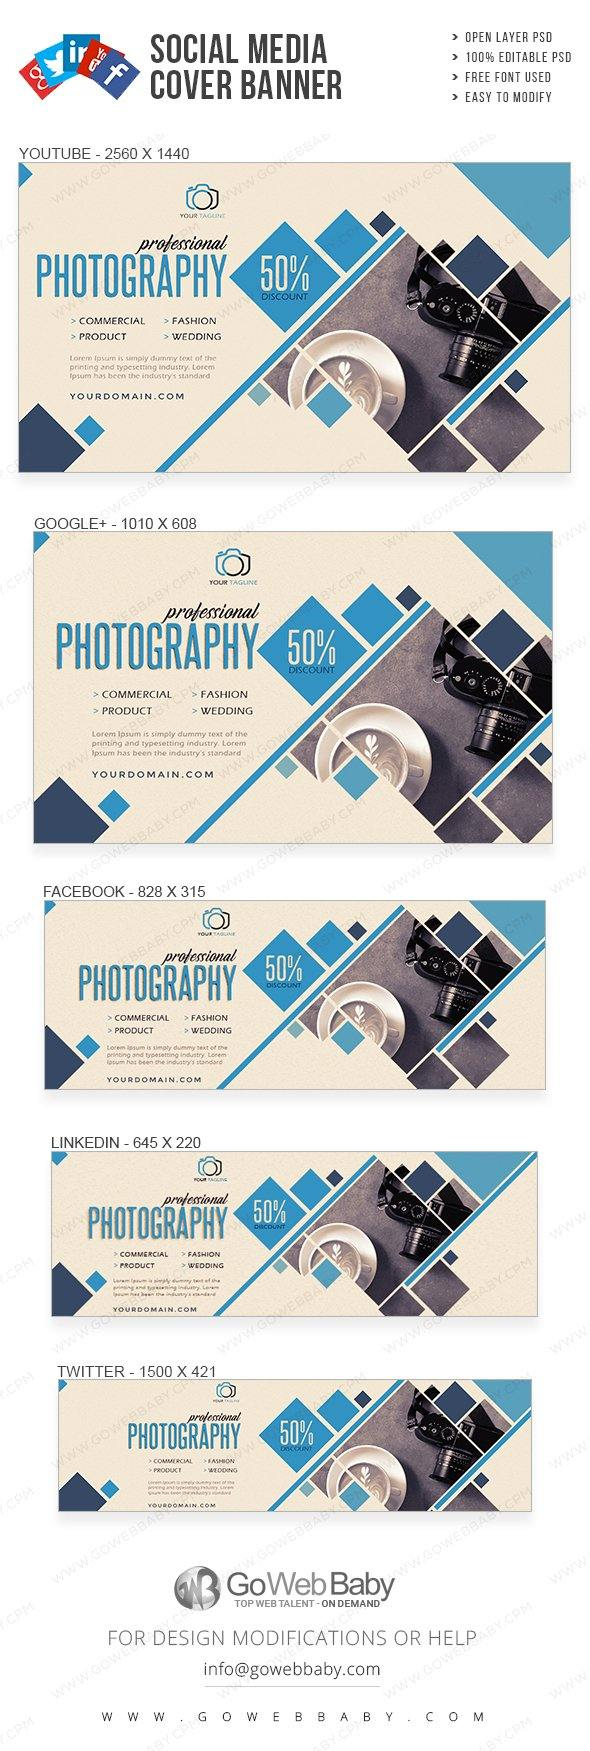 Social Media Cover Banner - Photography For Website Marketing